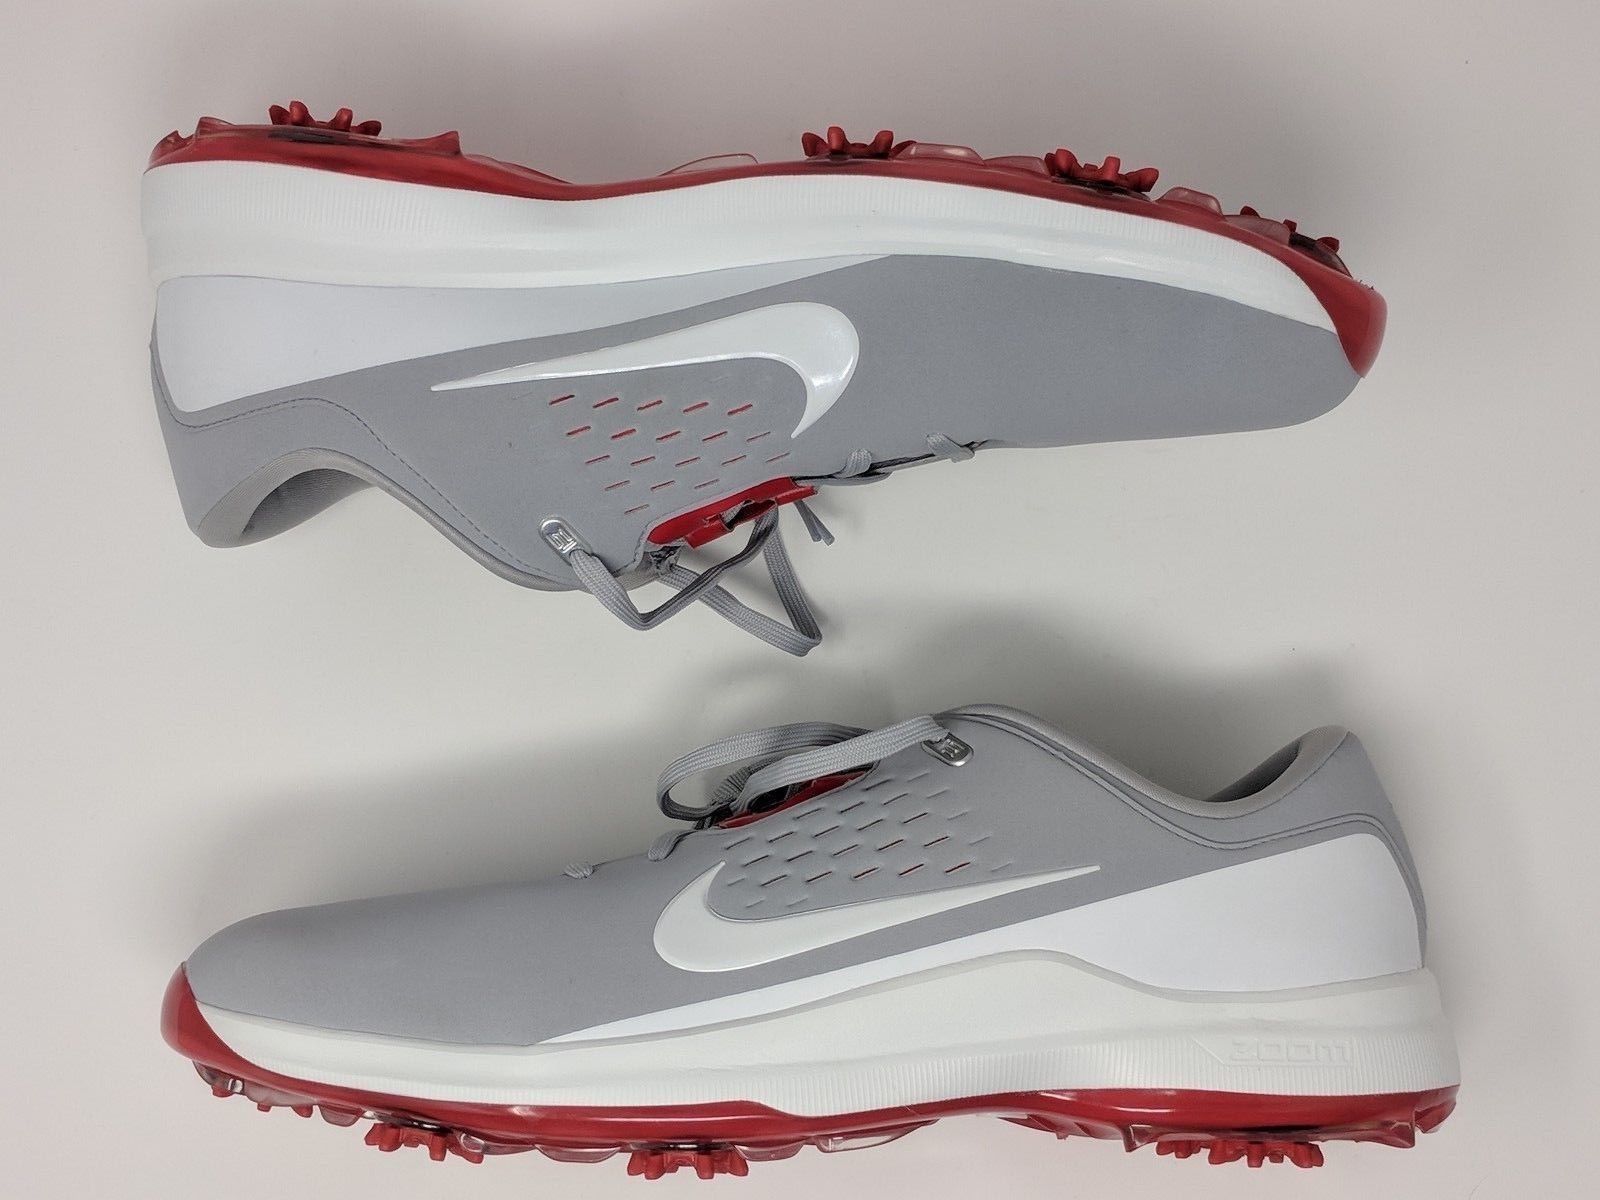 new style aac35 a3f84 NEW MSRP 150 Nike Mens Air Zoom TW71 Golf Shoes AA1990-001 - Size 13